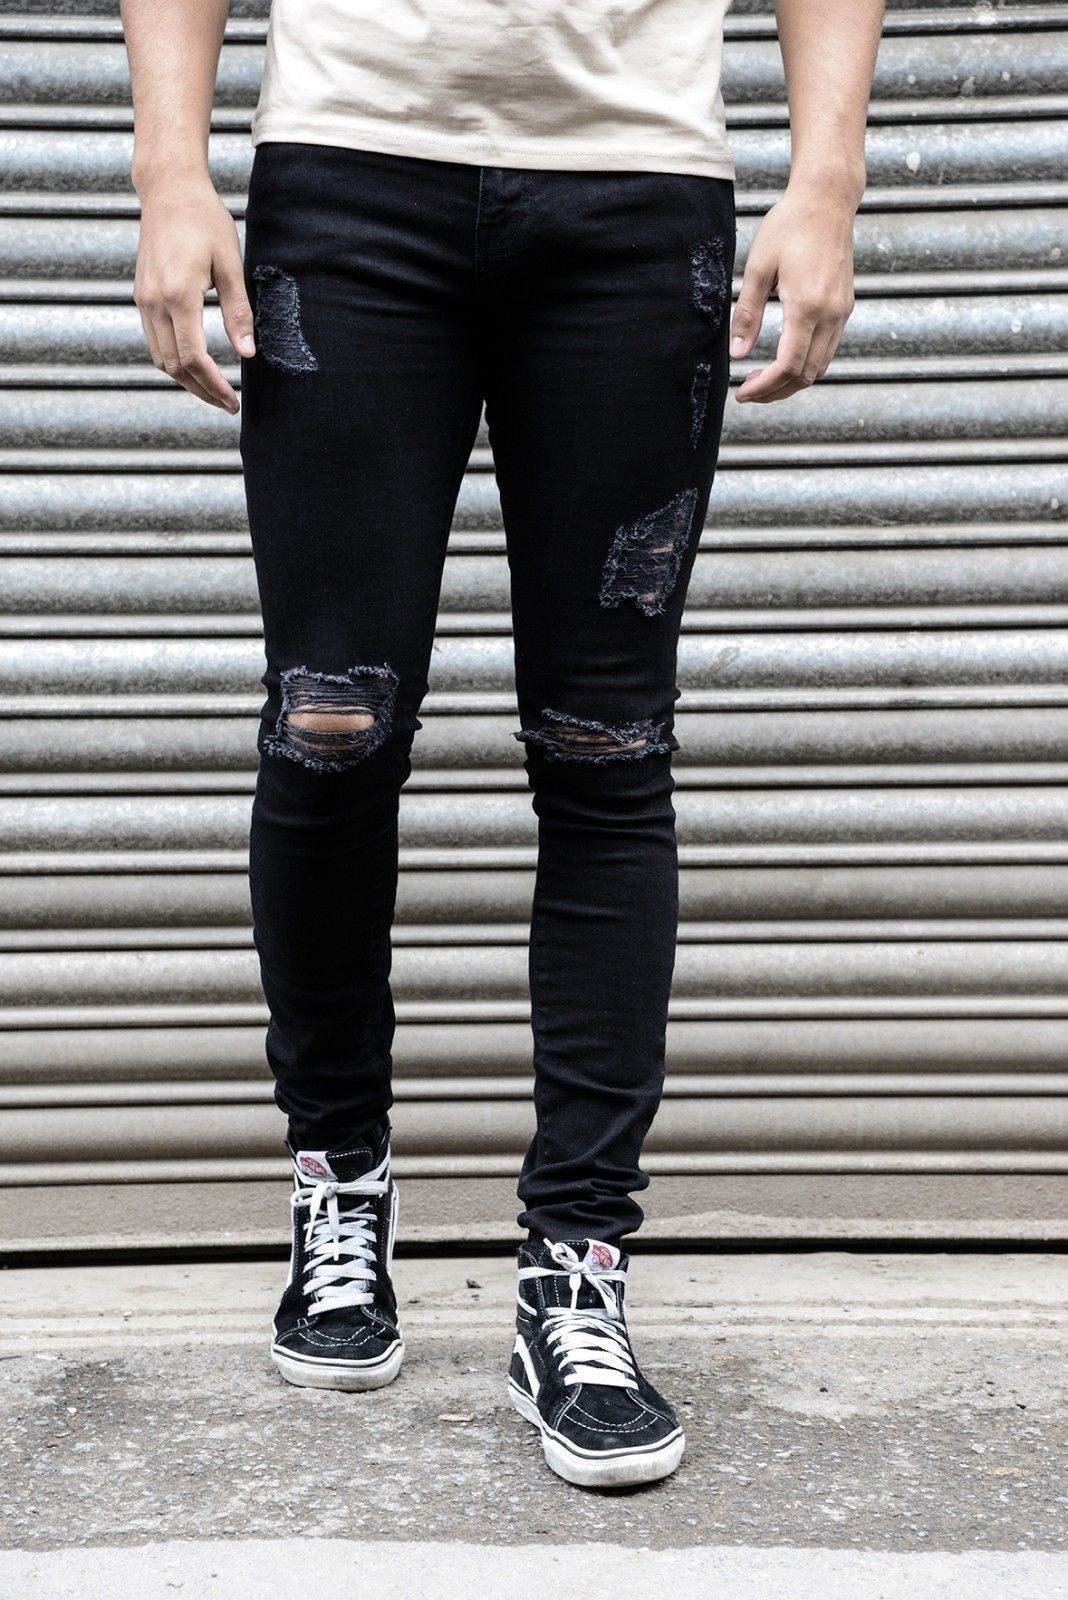 Skin pants mens tight ripped jeans